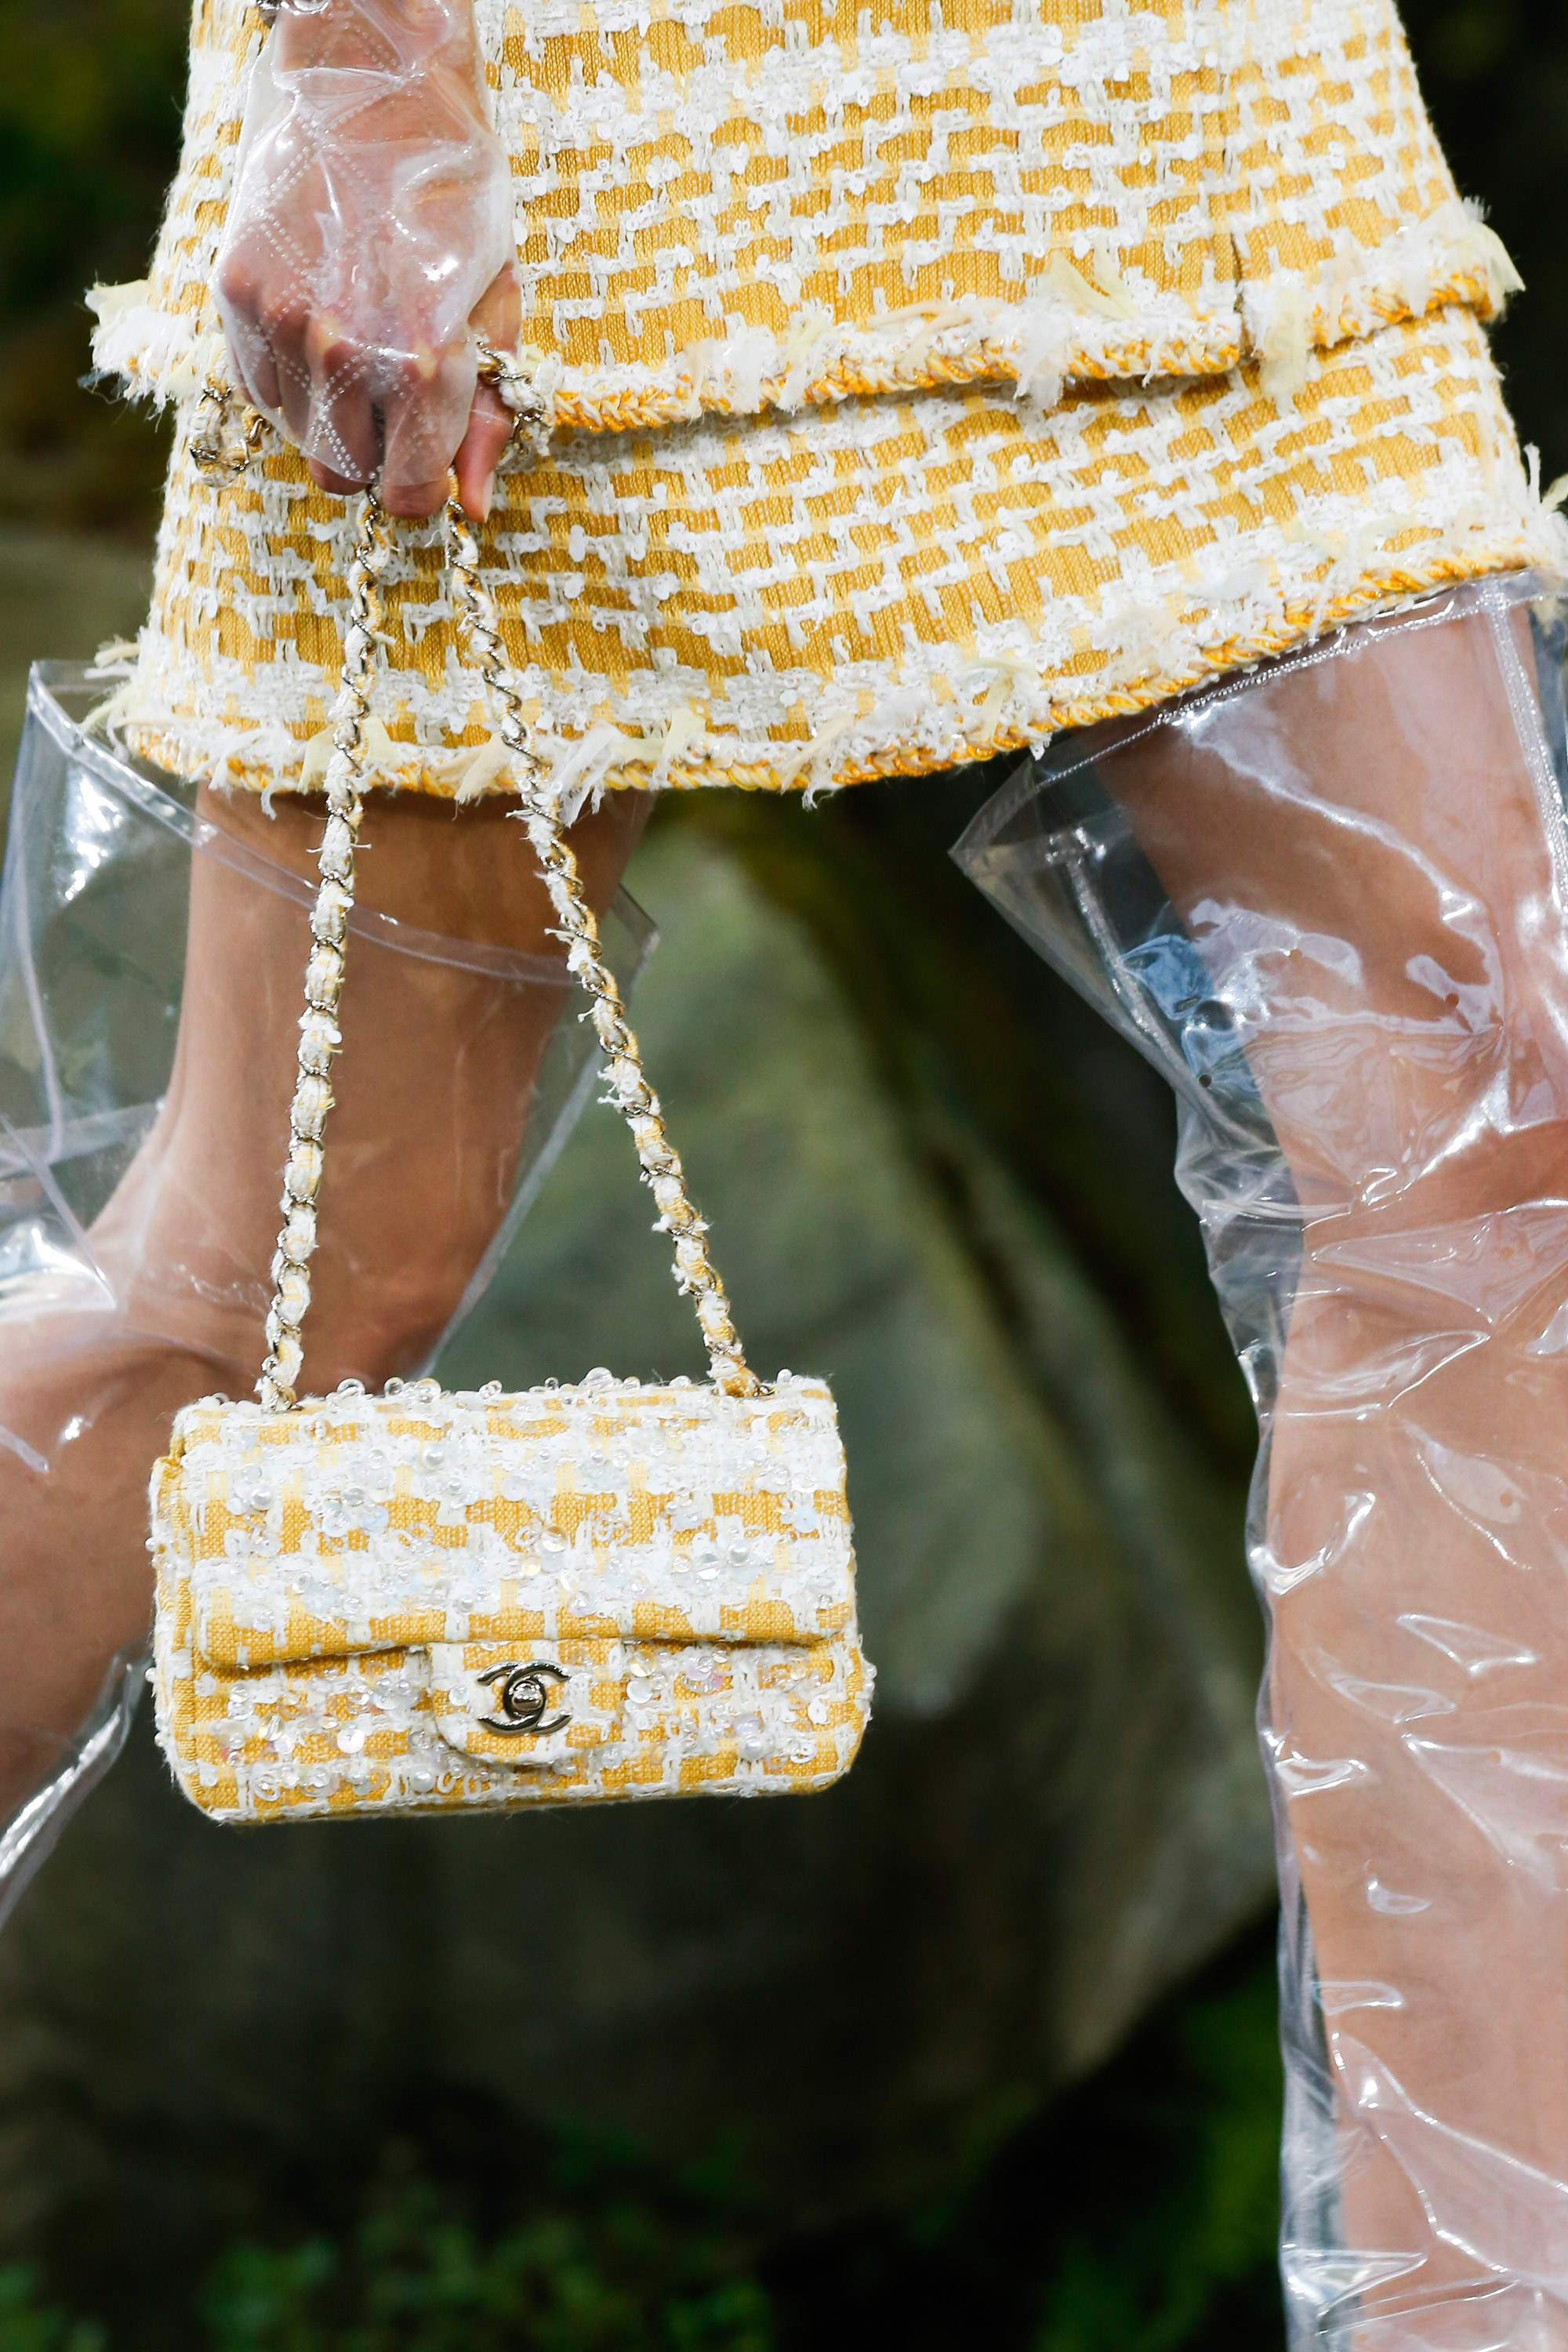 Chanel Spring/Summer 2018 Runway Bag Collection | Spotted ...